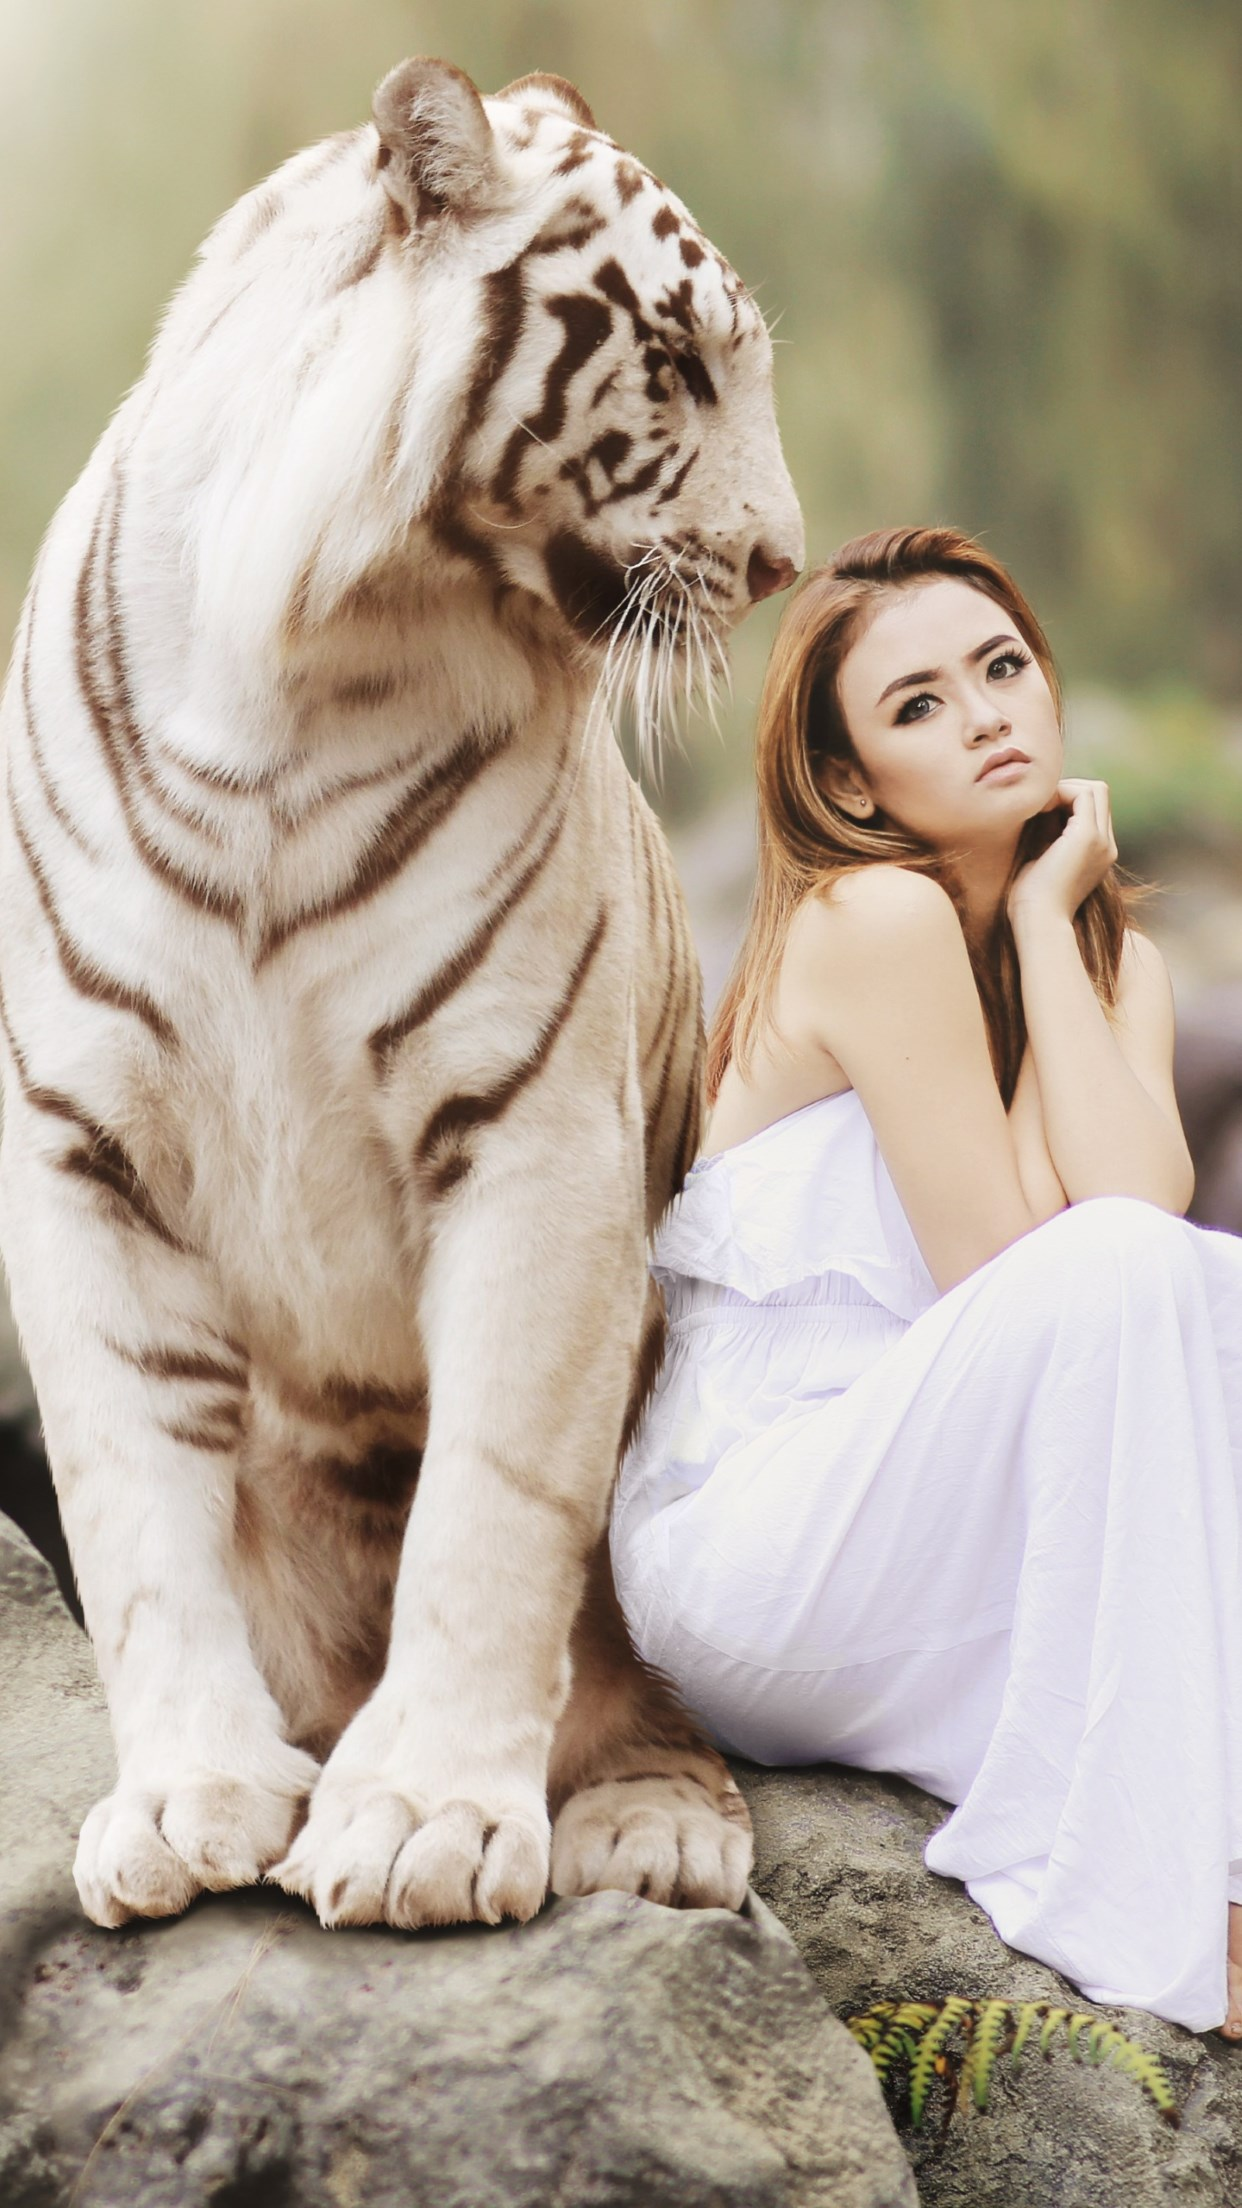 Bengal tiger and a beautiful girl wallpaper 1242x2208